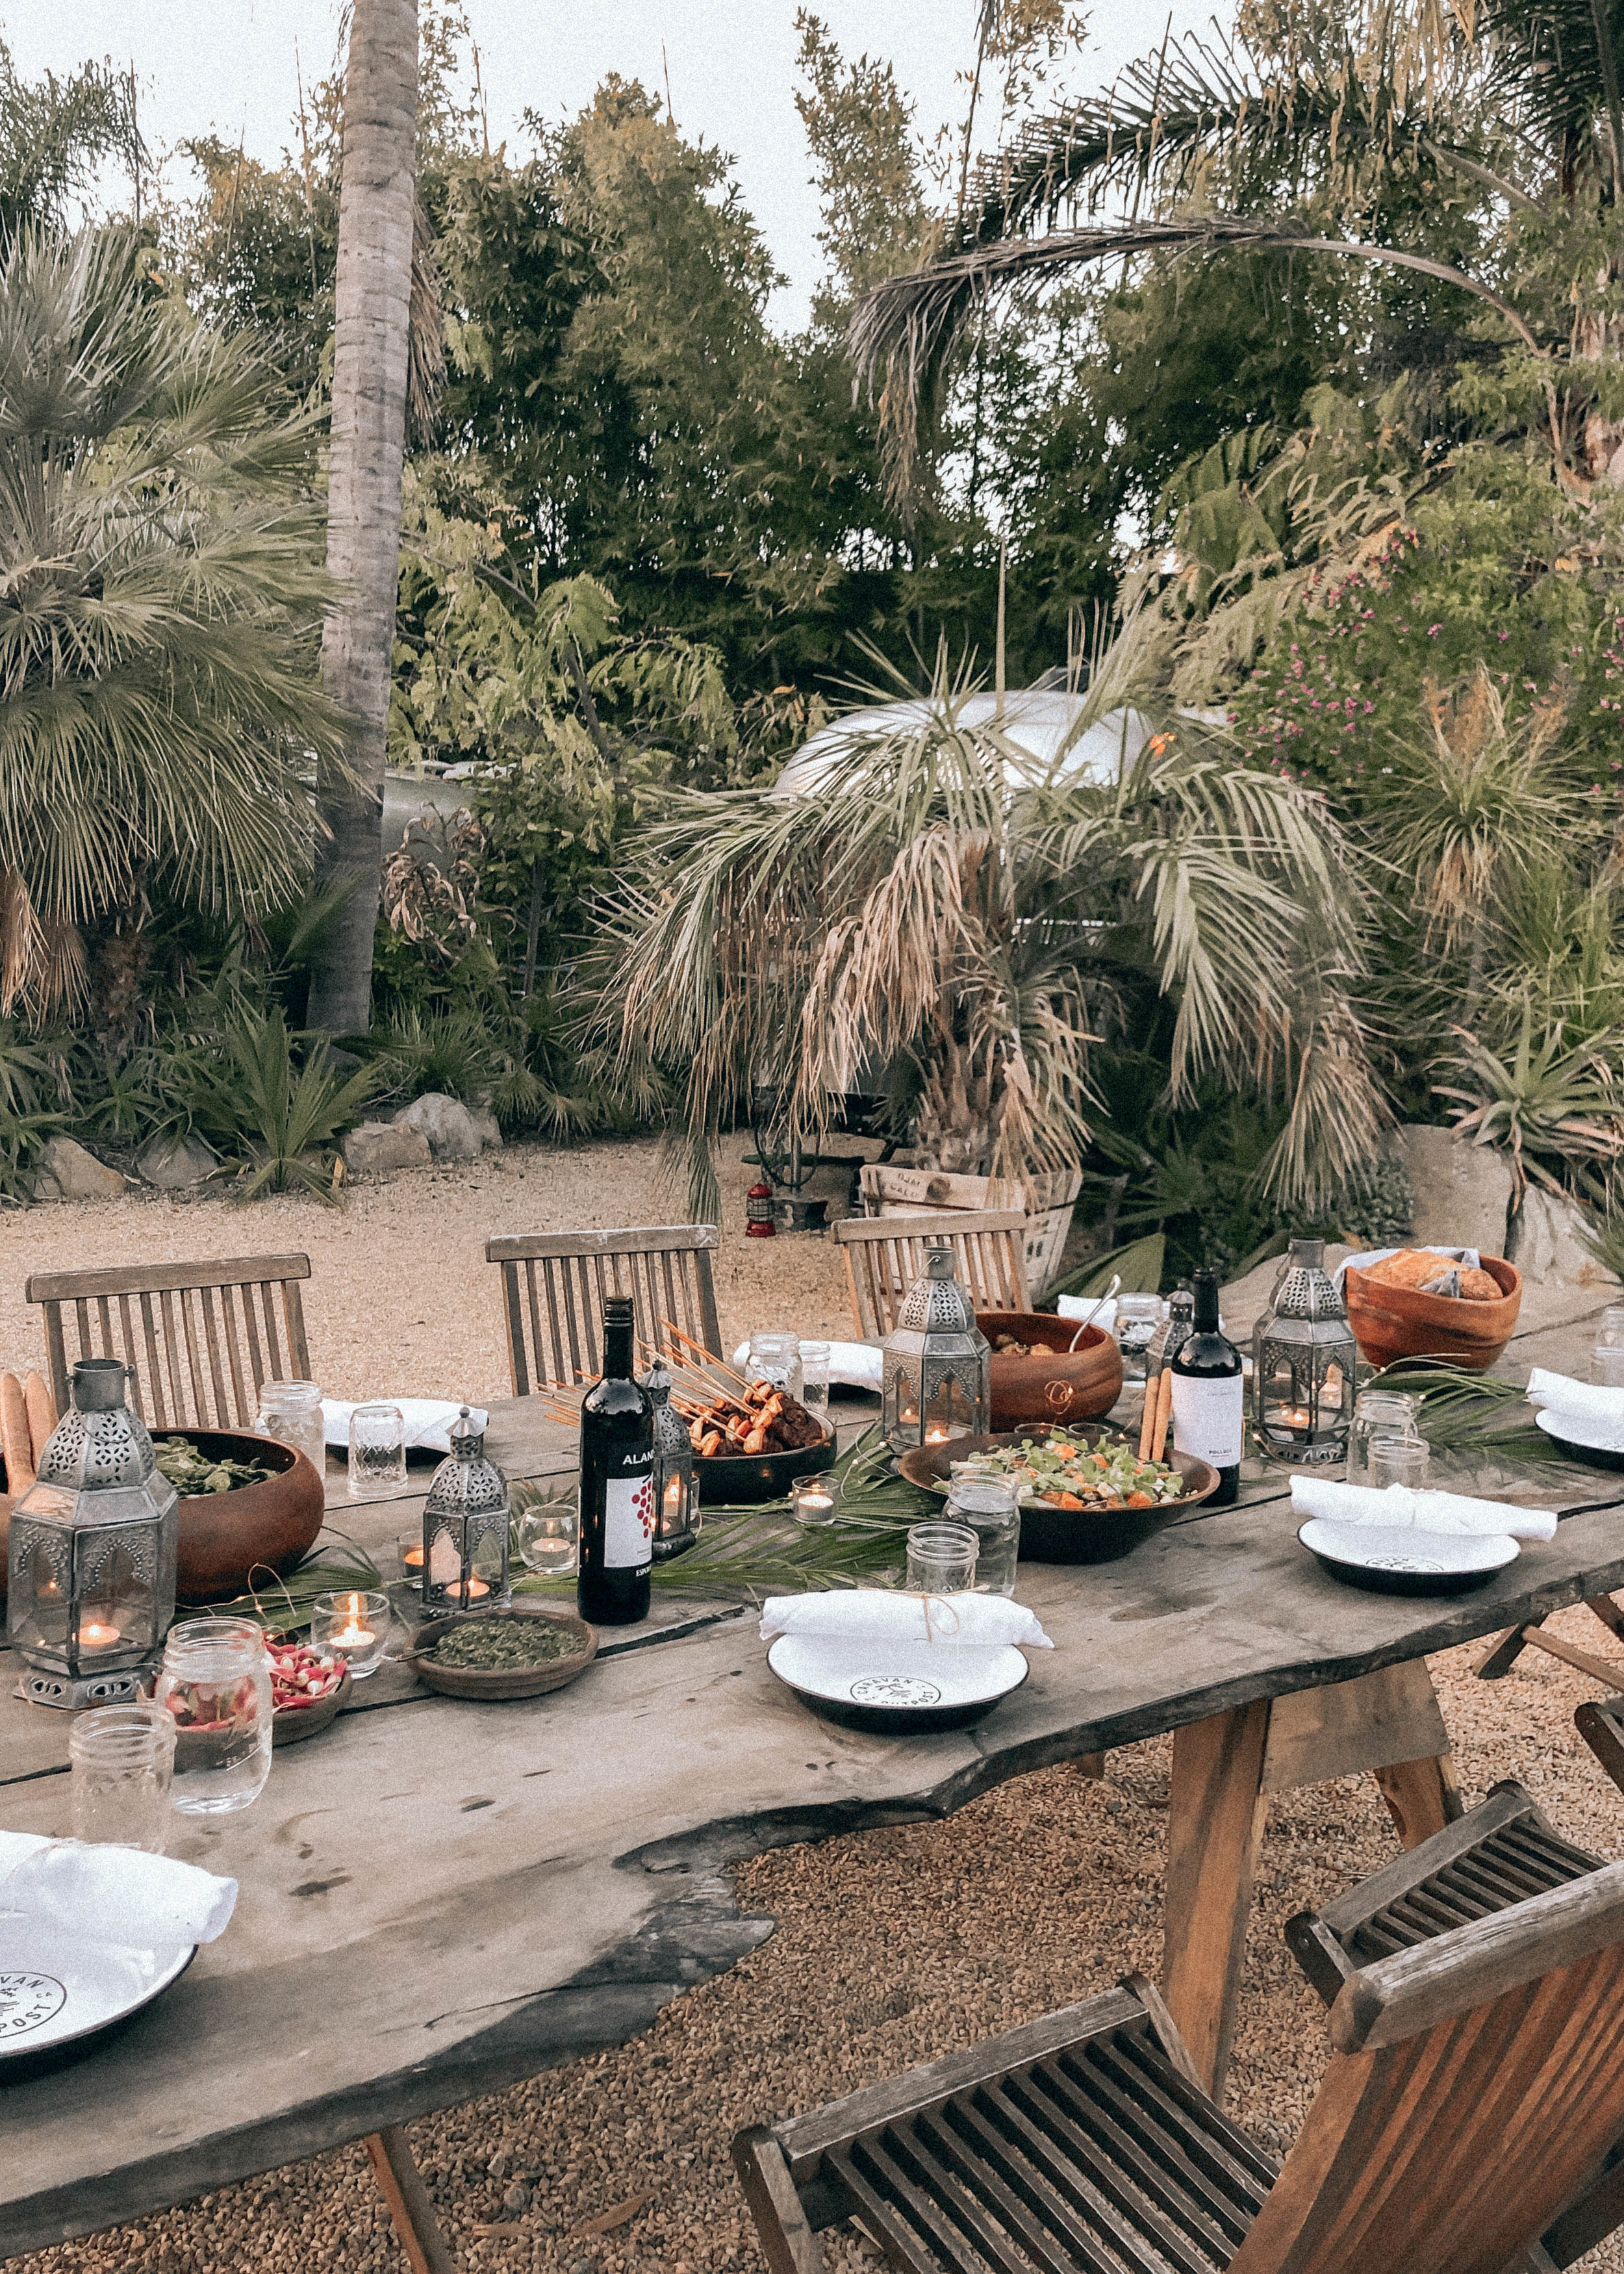 Private catered dinner at Caravan Outpost (courtesy of Z Supply)